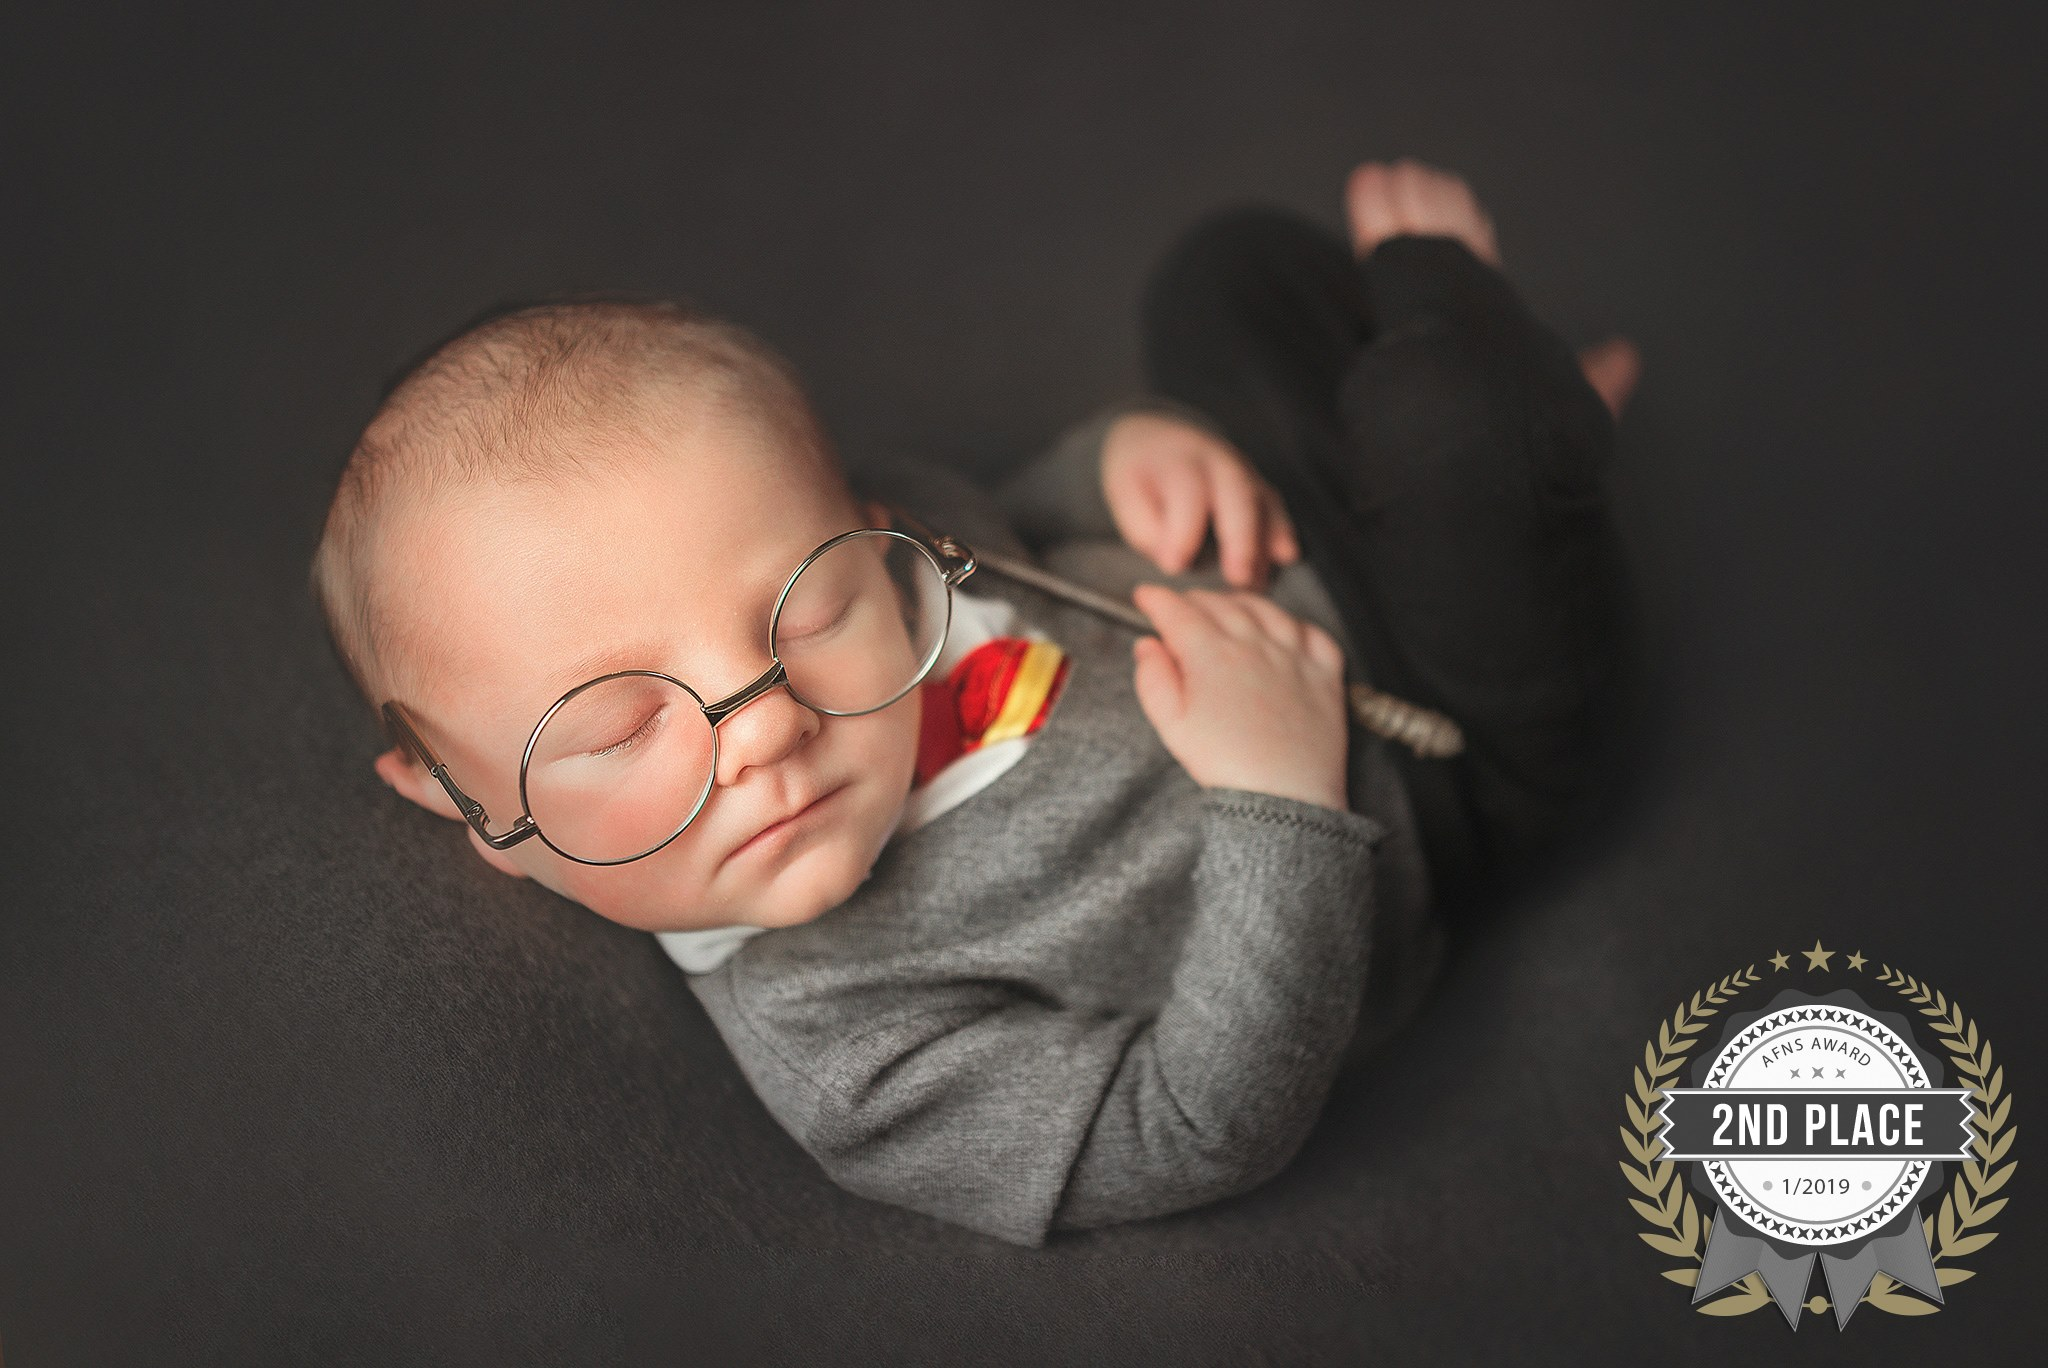 THE AFNS AWARD-  AWARDS FOR PHOTOGRAPHERS IN THE FIELD OF NEWBORN PHOTOGRAPHY & MATERNITY PHOTOGRAPHY